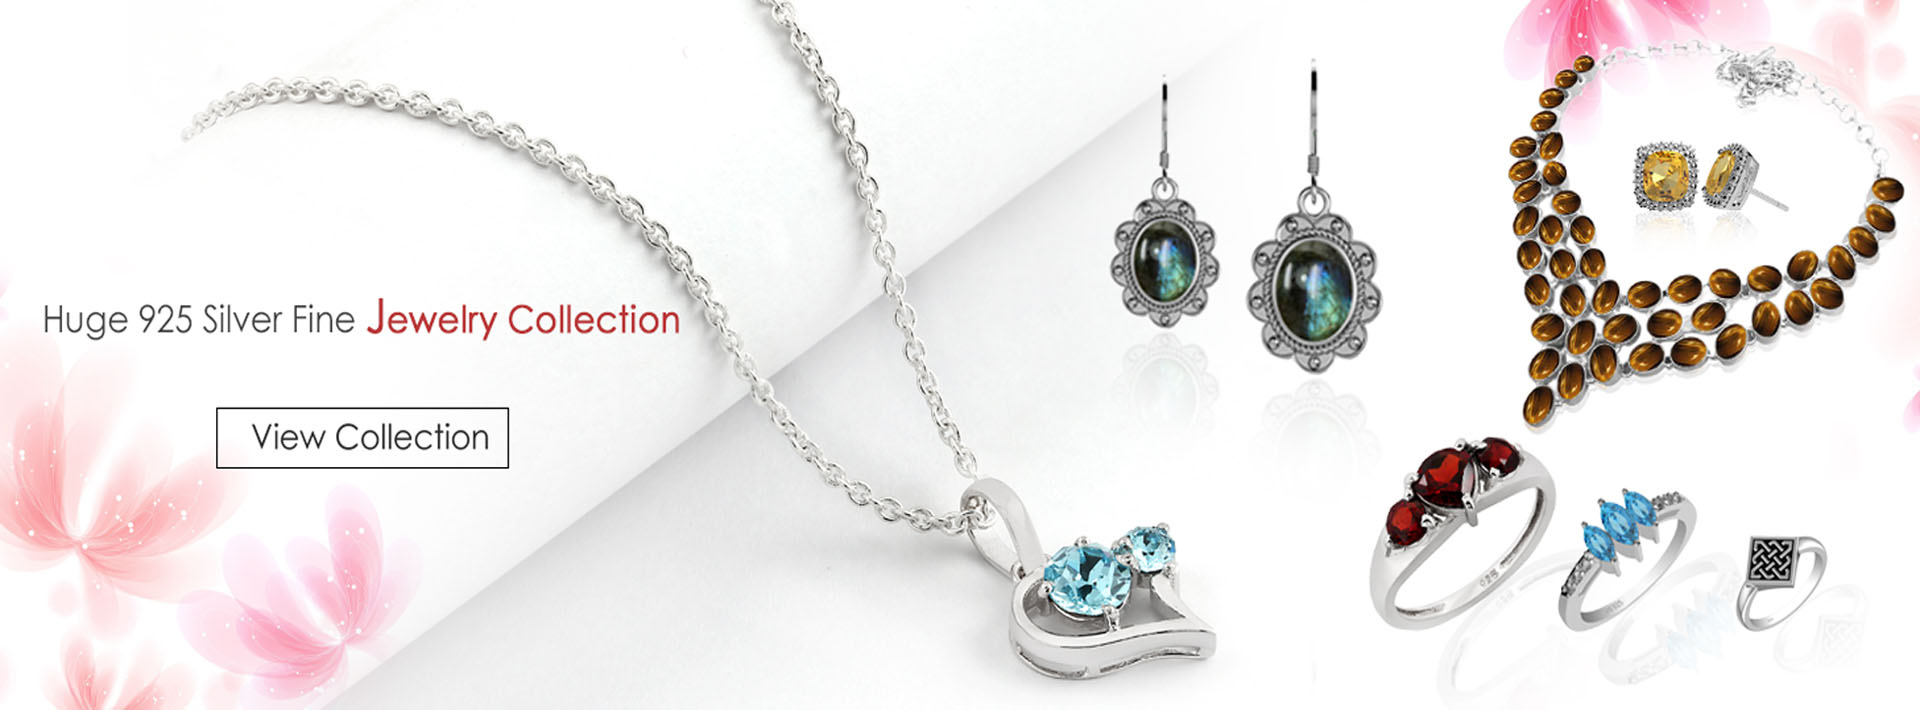 925 silver fine jewelry collection